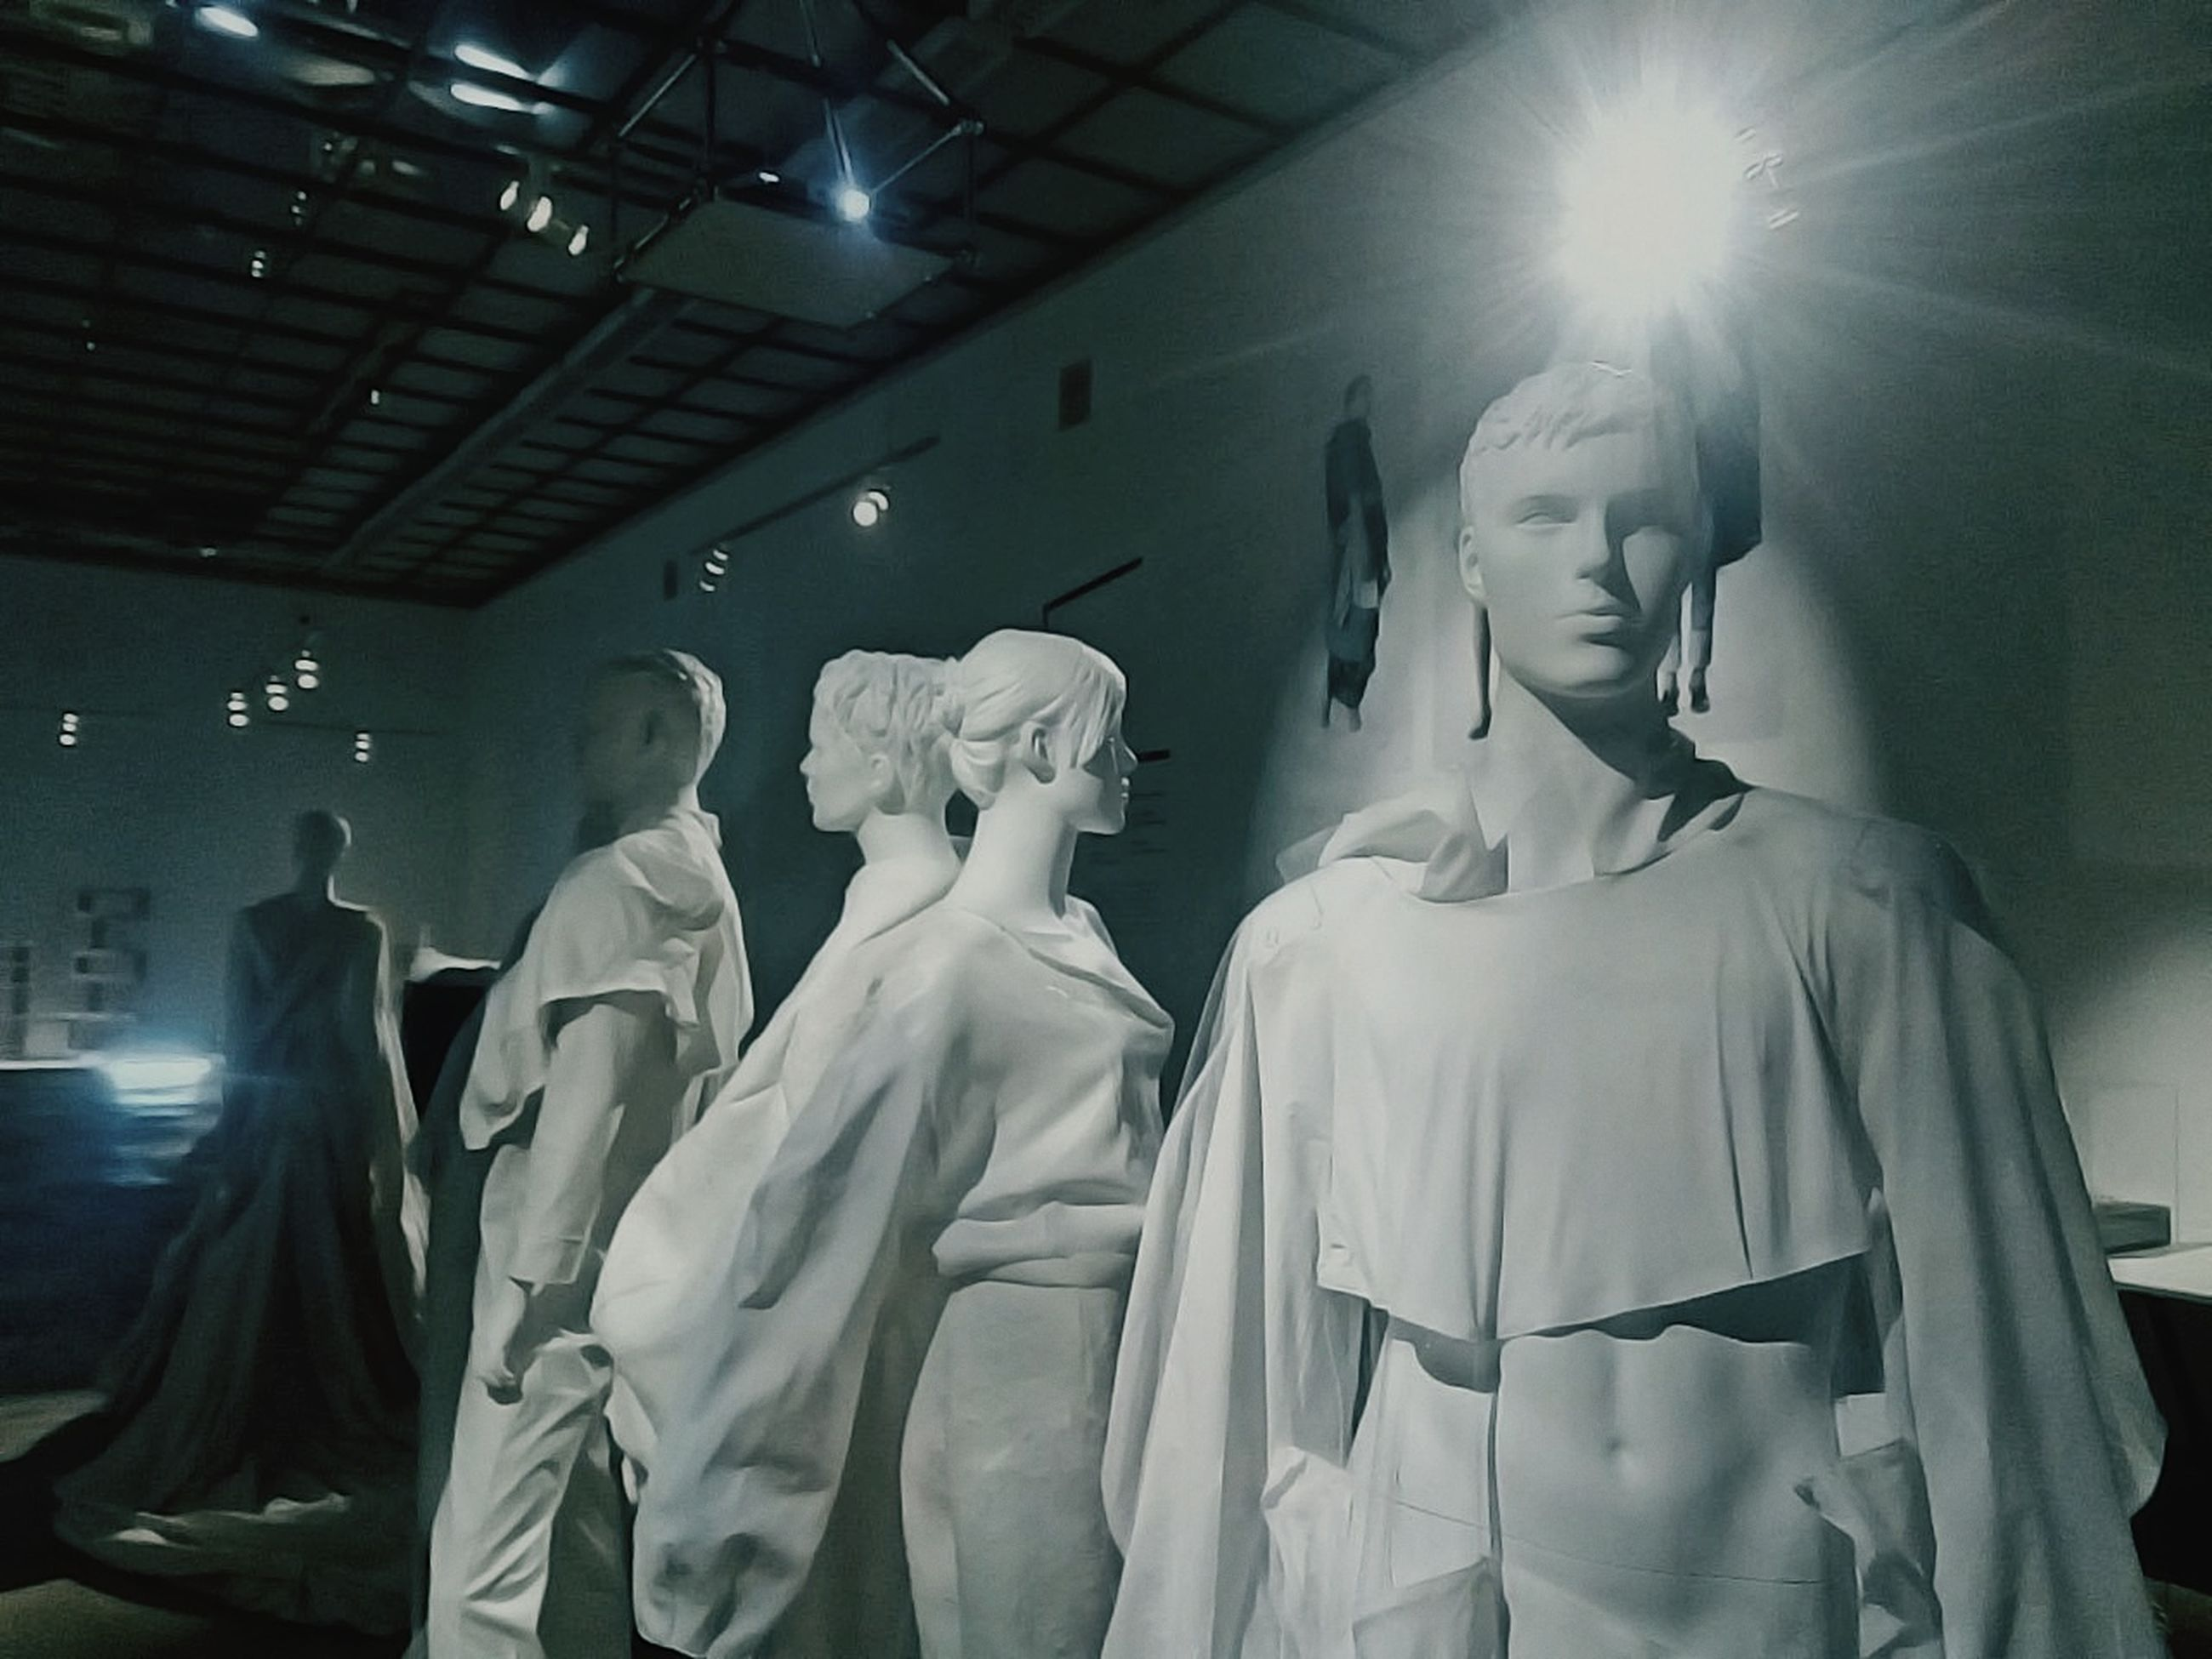 human representation, representation, art and craft, creativity, sculpture, indoors, male likeness, statue, architecture, female likeness, no people, lens flare, built structure, religion, mannequin, clothing, low angle view, craft, illuminated, spirituality, ceiling